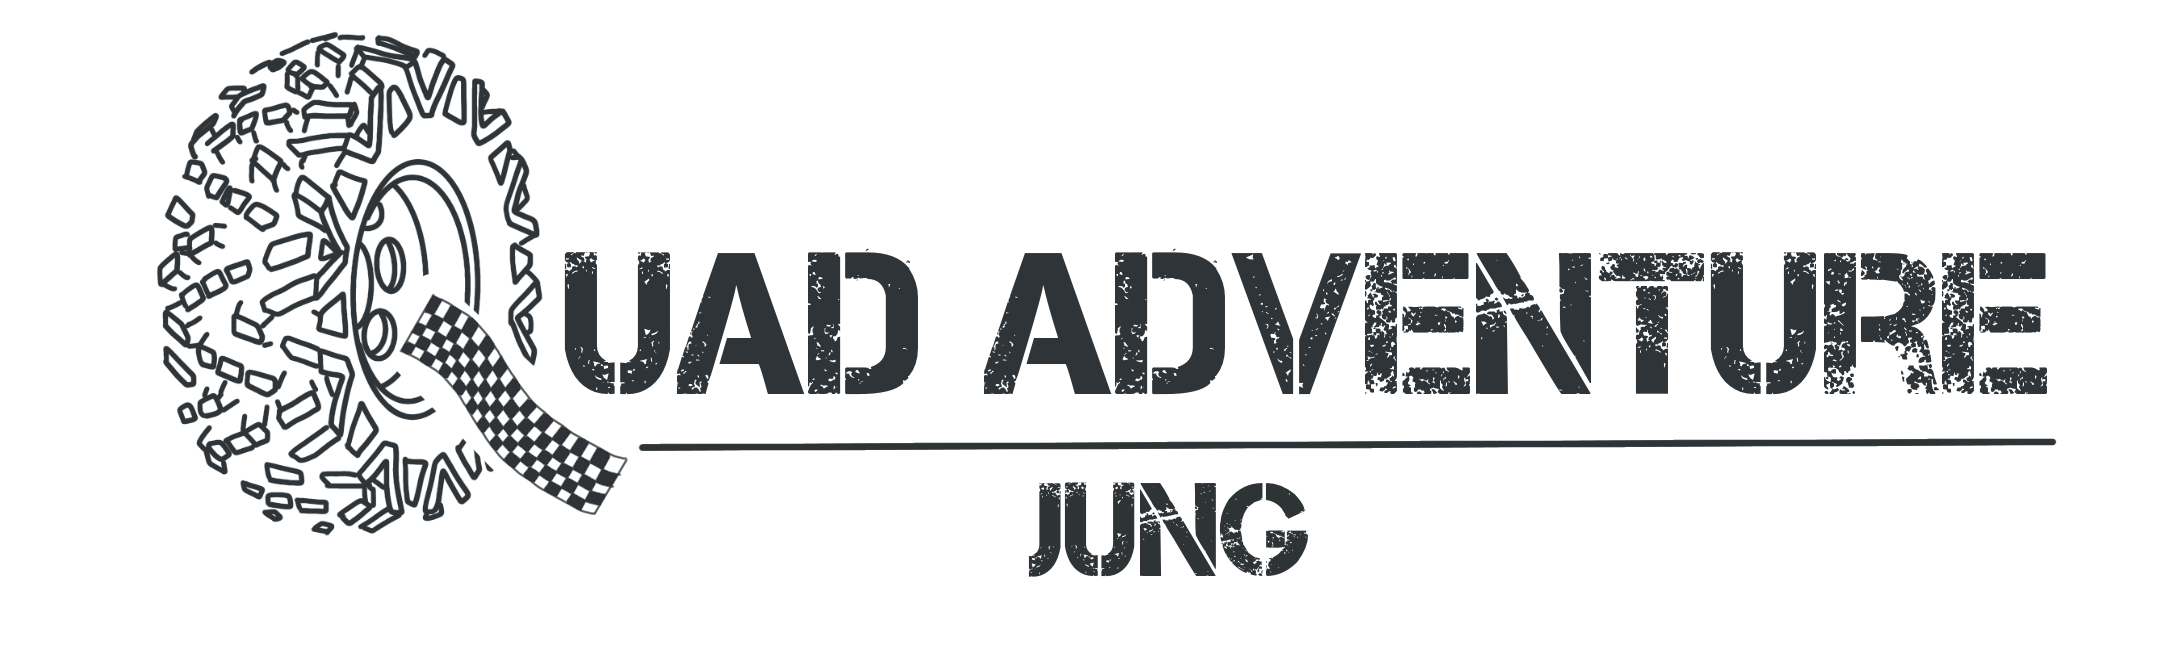 Quad Adventure Jung